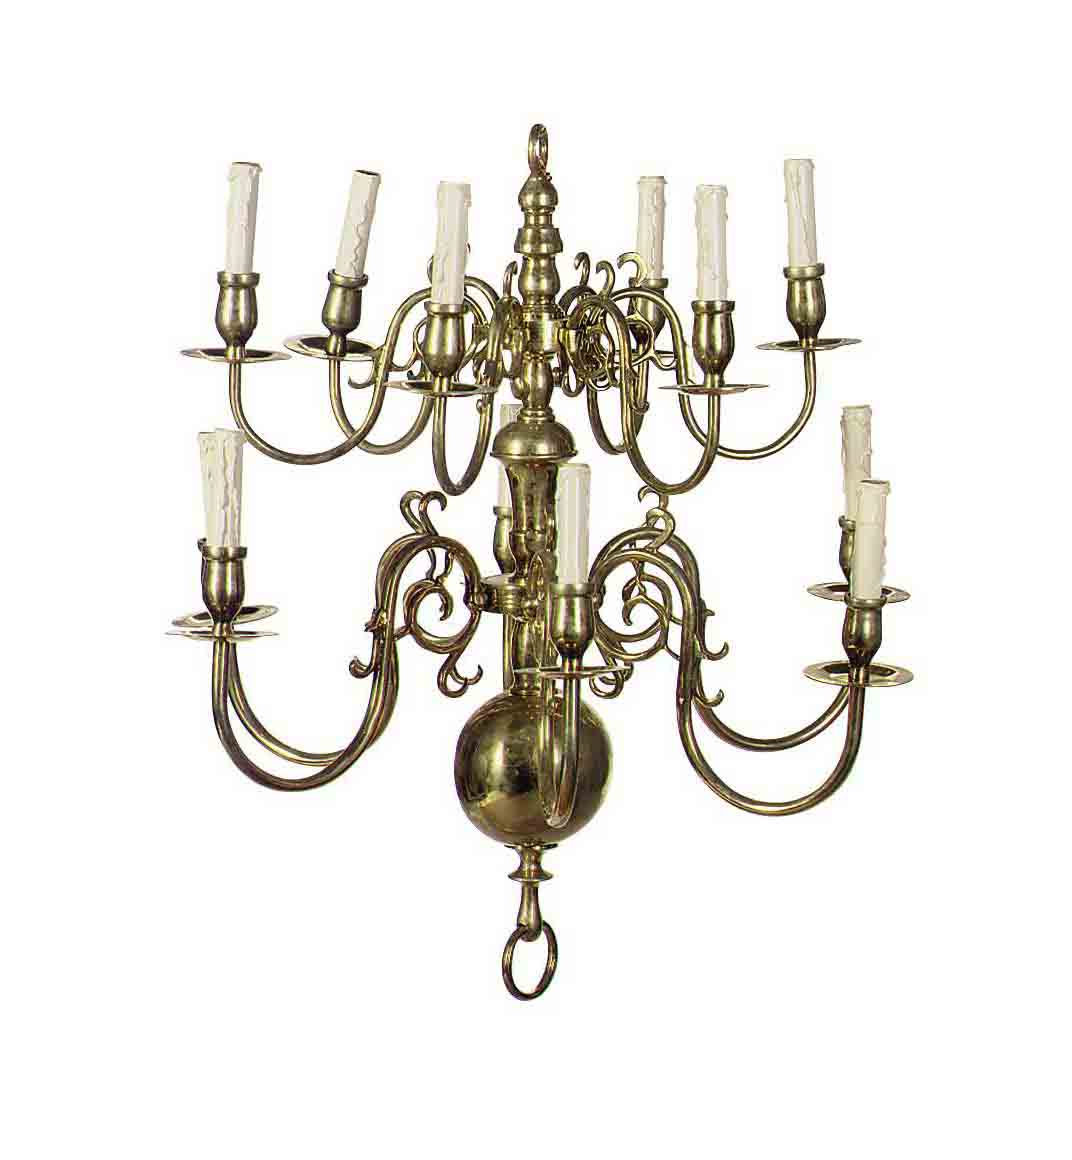 A BRASS TWELVE-LIGHT CHANDELIE